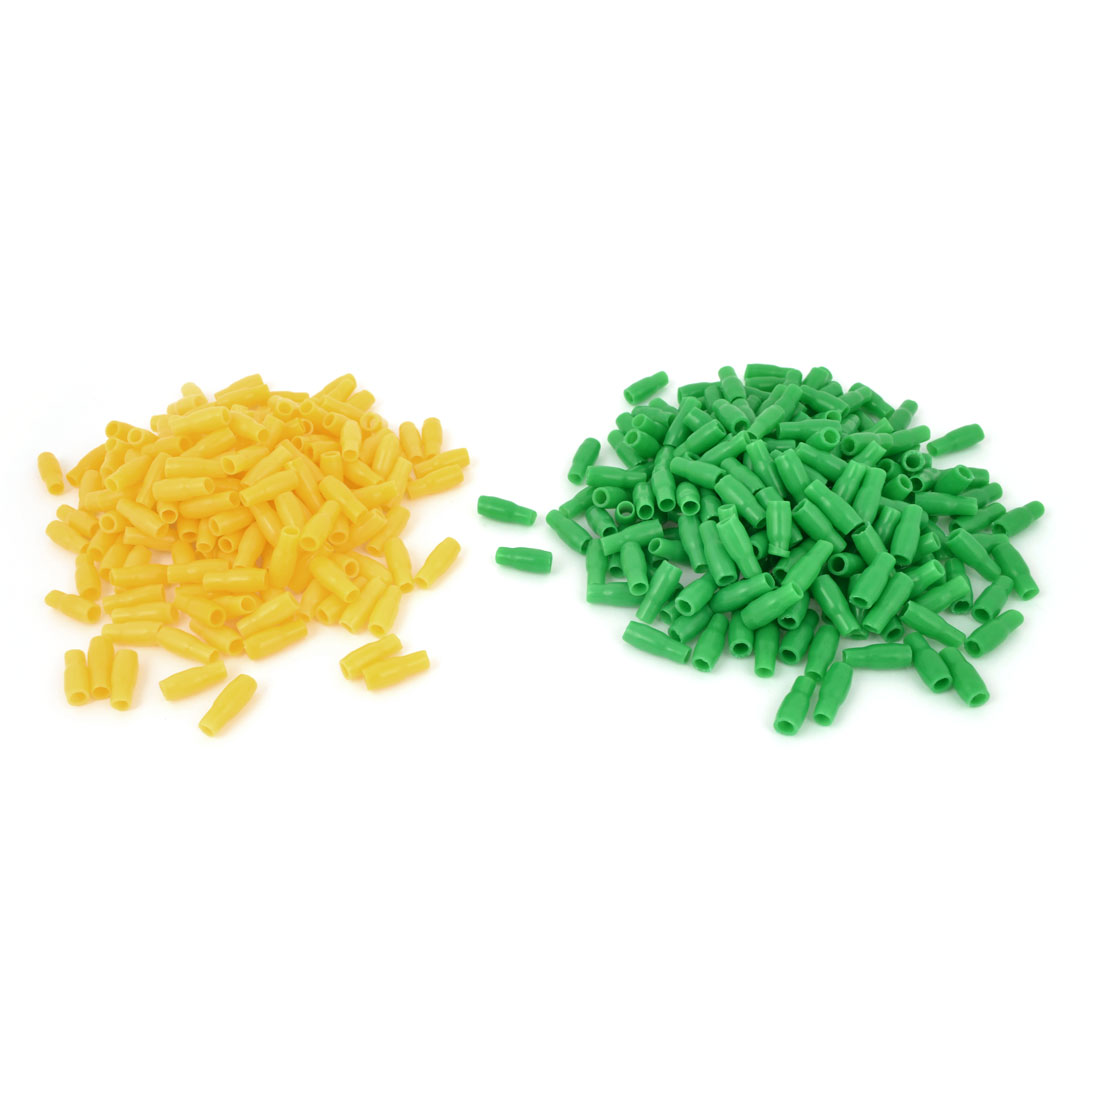 1000pcs Yellow Green 3.5-4mm2 Terminal End Insulated Sleeves Replacement